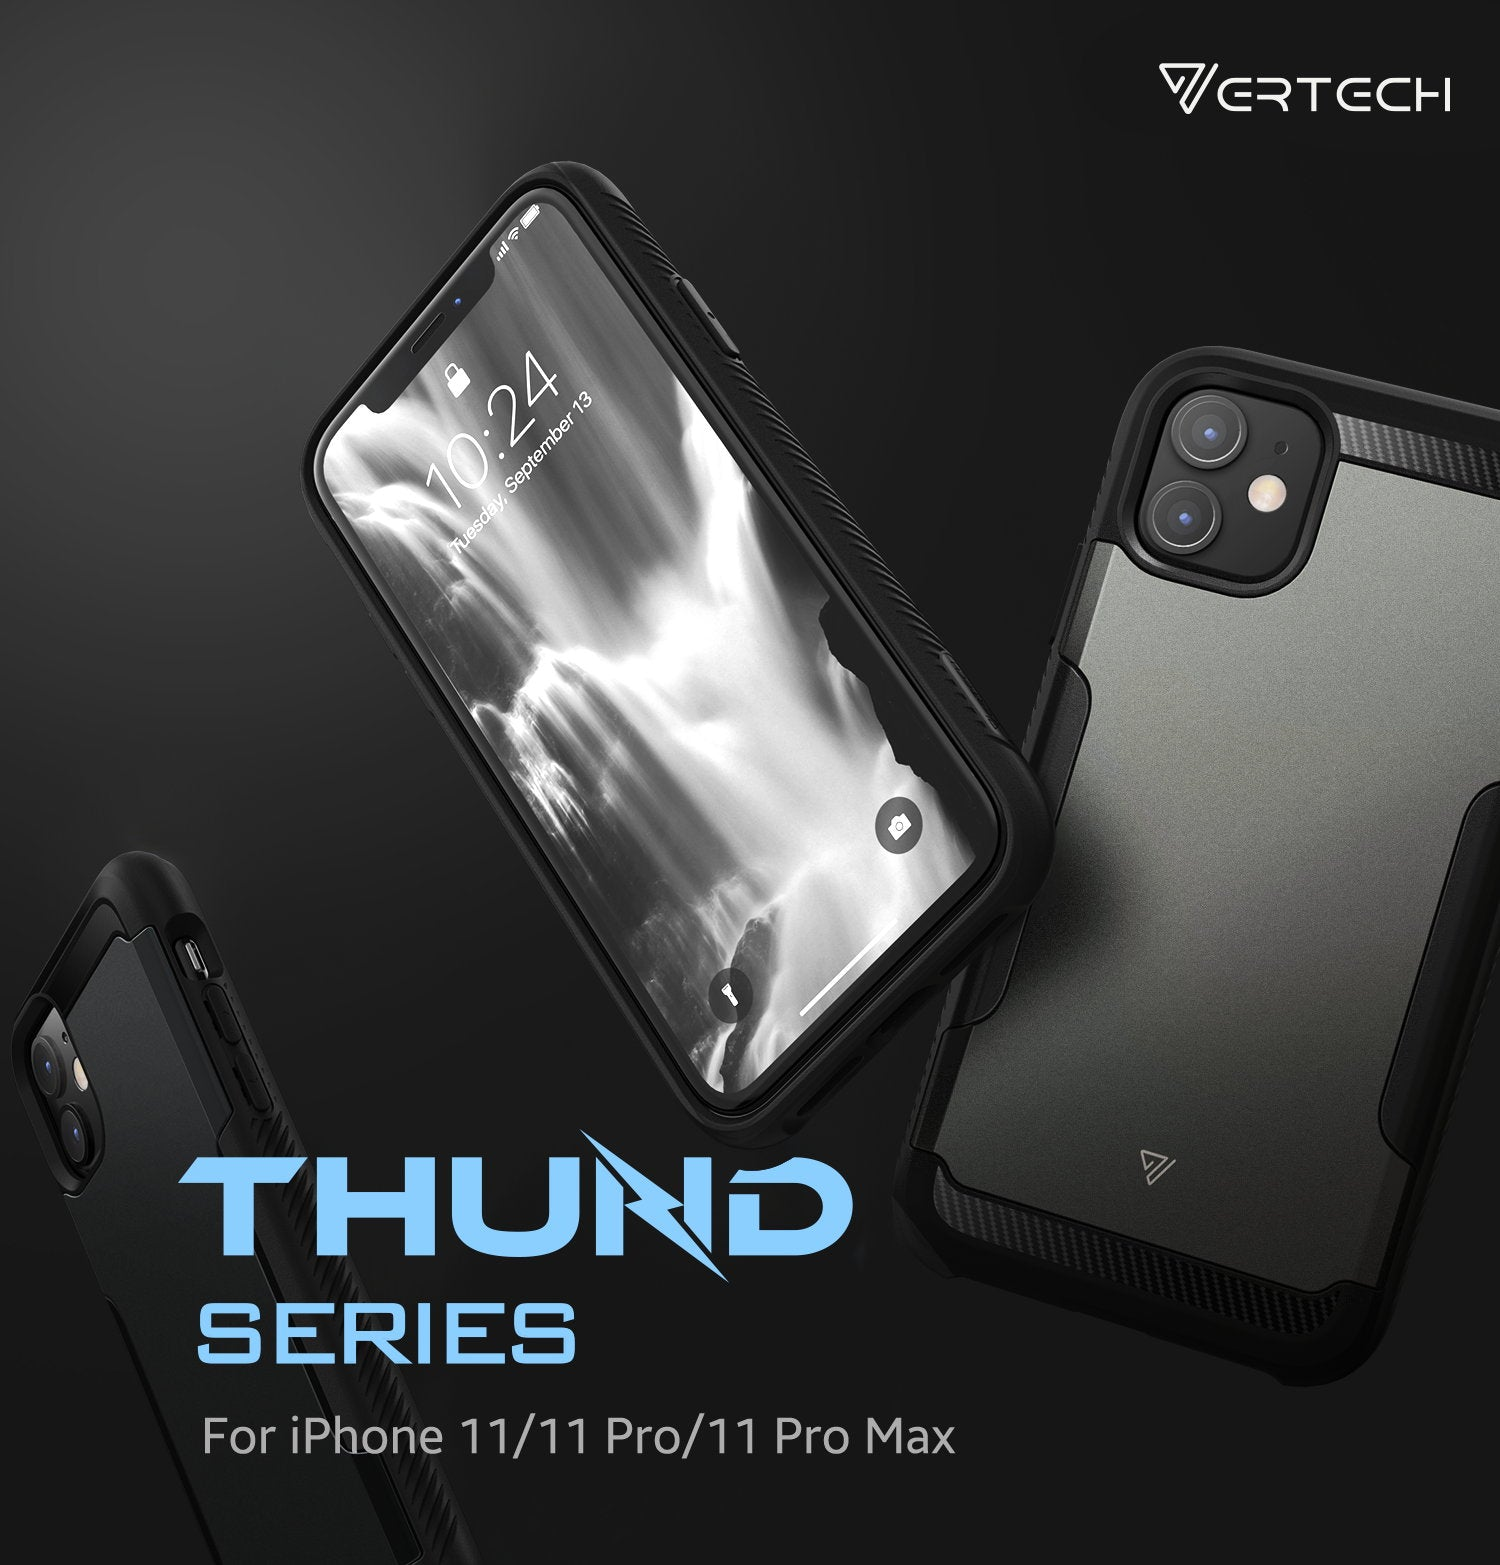 iPhone 11 Case VERTECH Heavy Duty Shockproof Slim Hard Armor Back Cover-Black